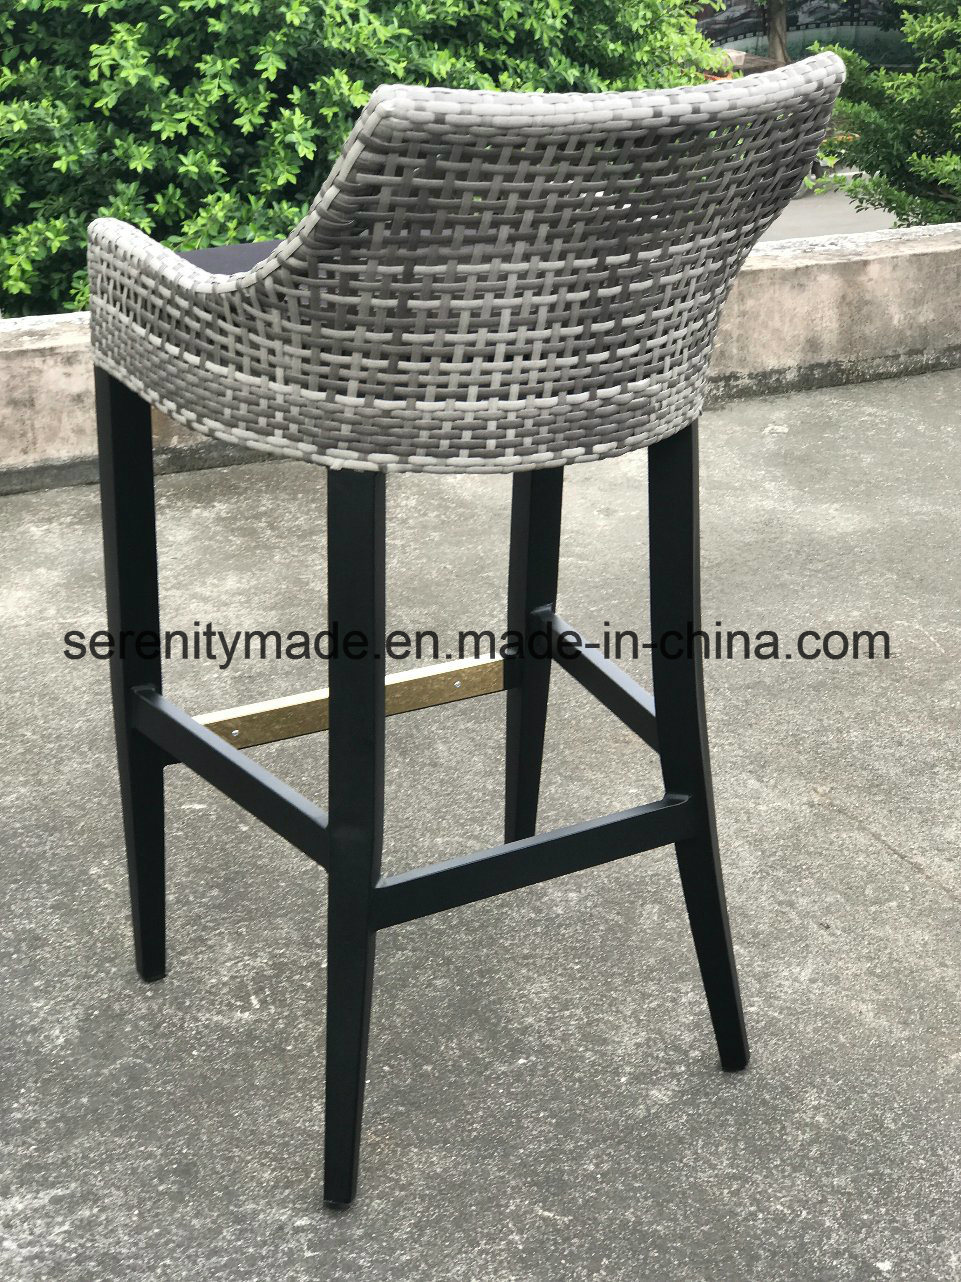 Swell China Aluminum Frame Synthetic Rattan Woven Counter Height Machost Co Dining Chair Design Ideas Machostcouk